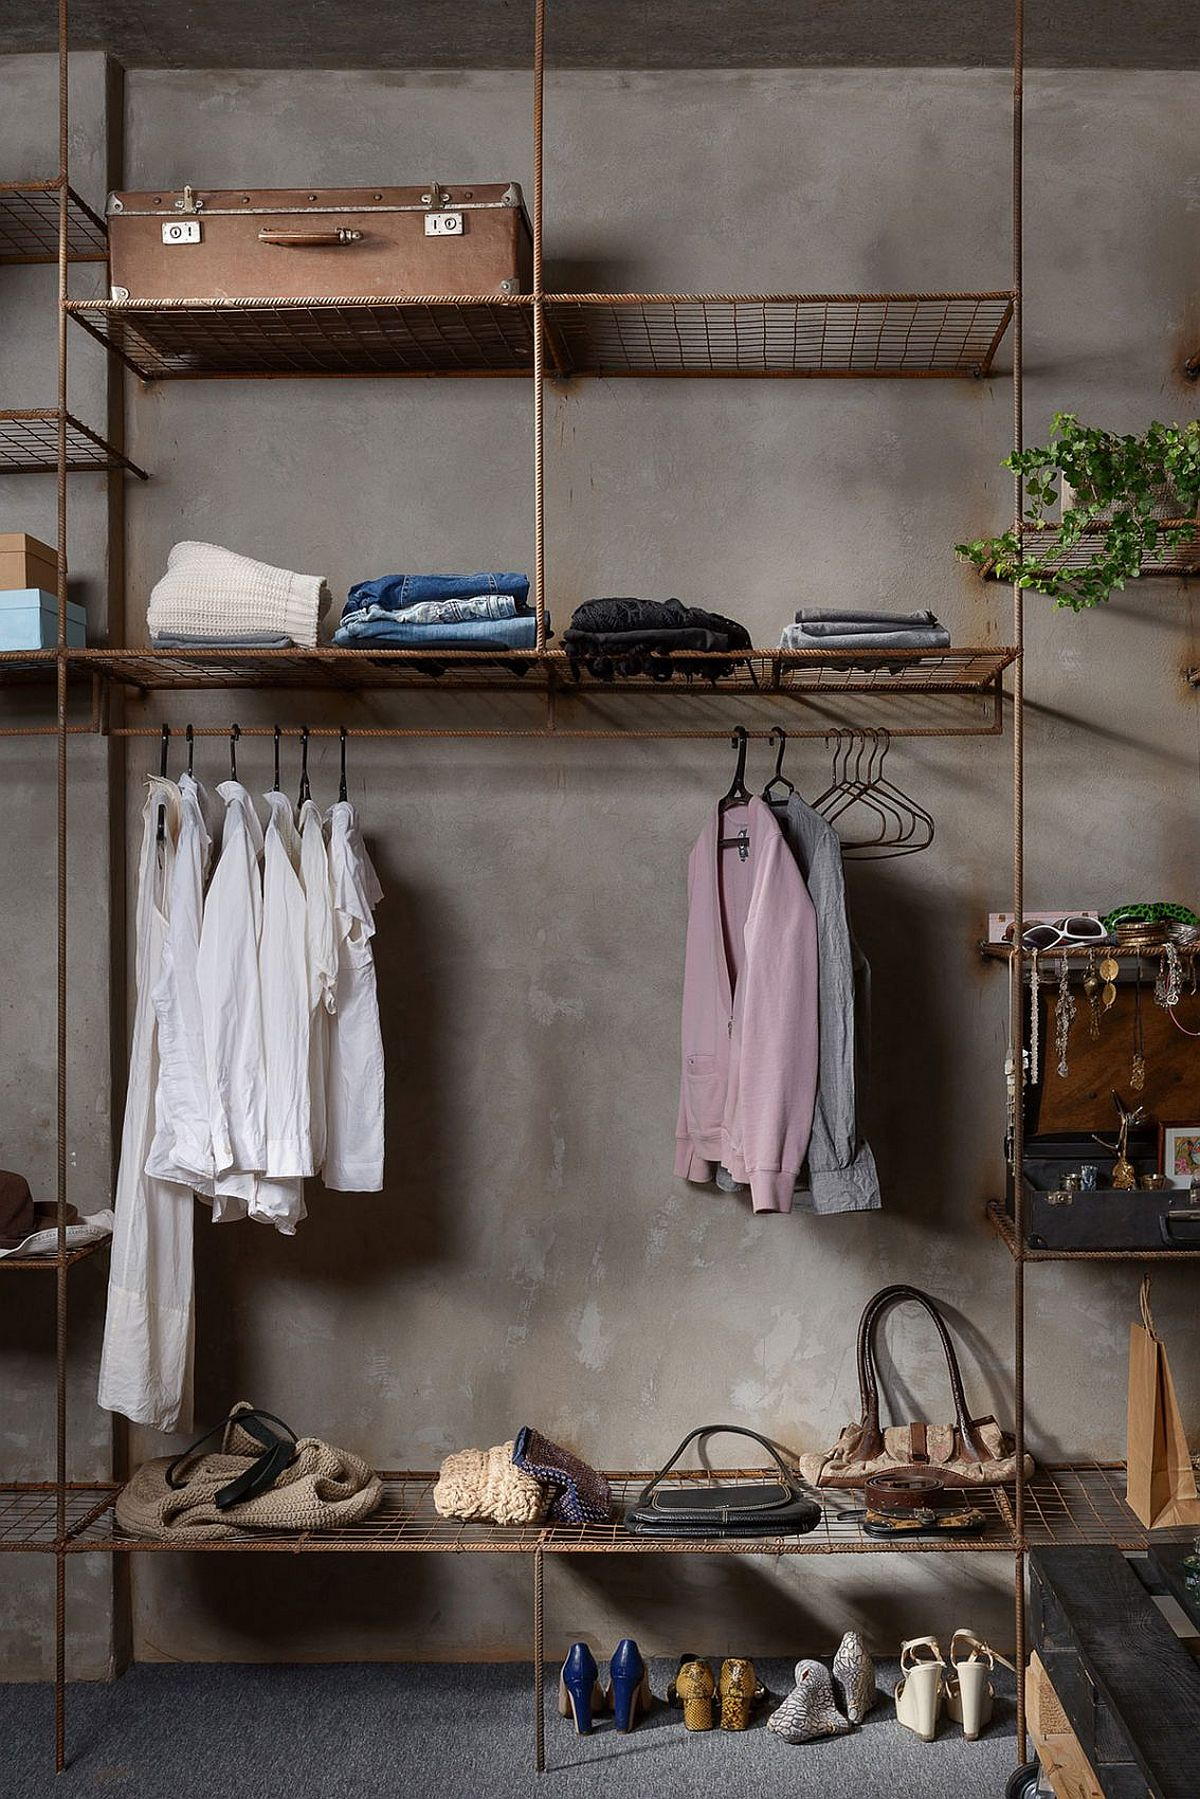 Metallic frame and iron rods create a cool, industrial wardrobe